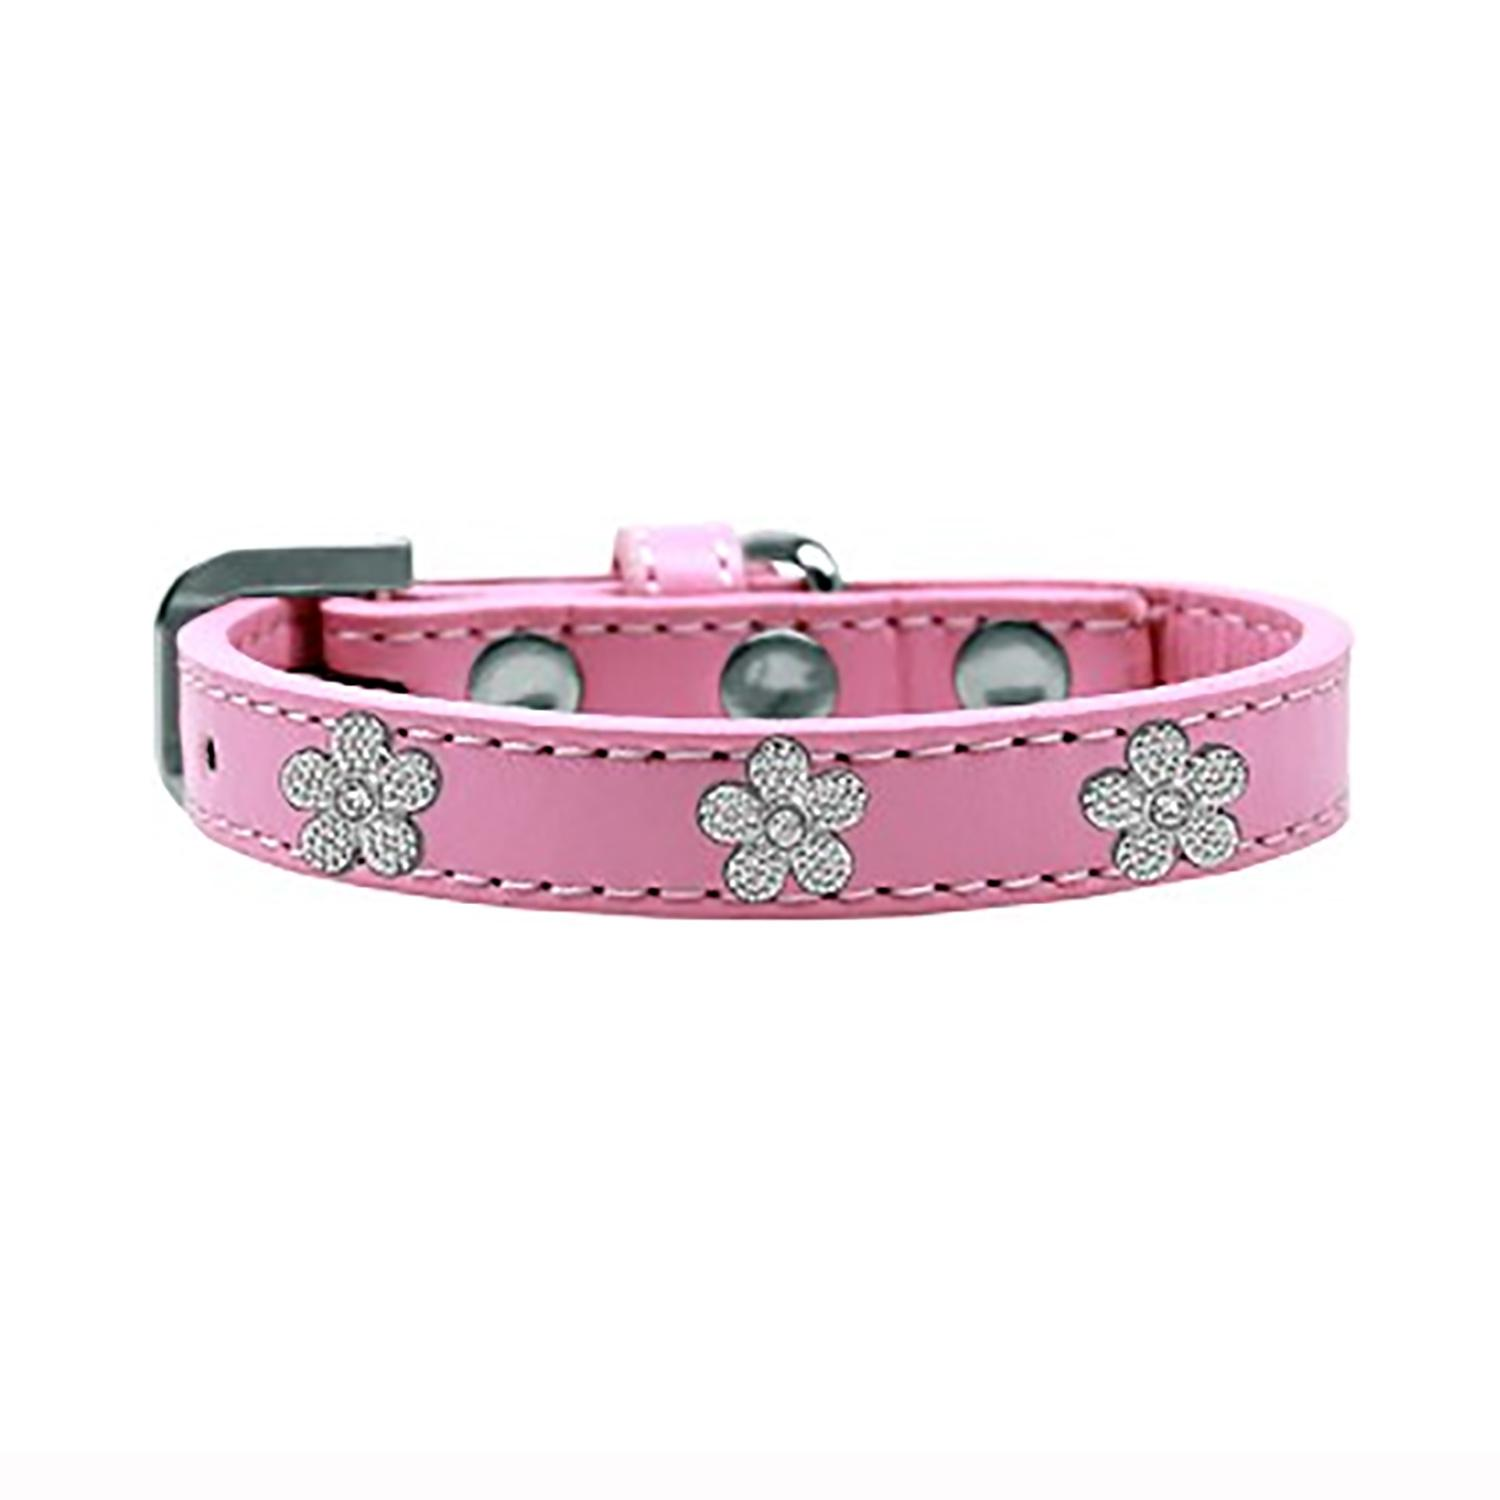 Silver Flower Widget Dog Collar - Light Pink